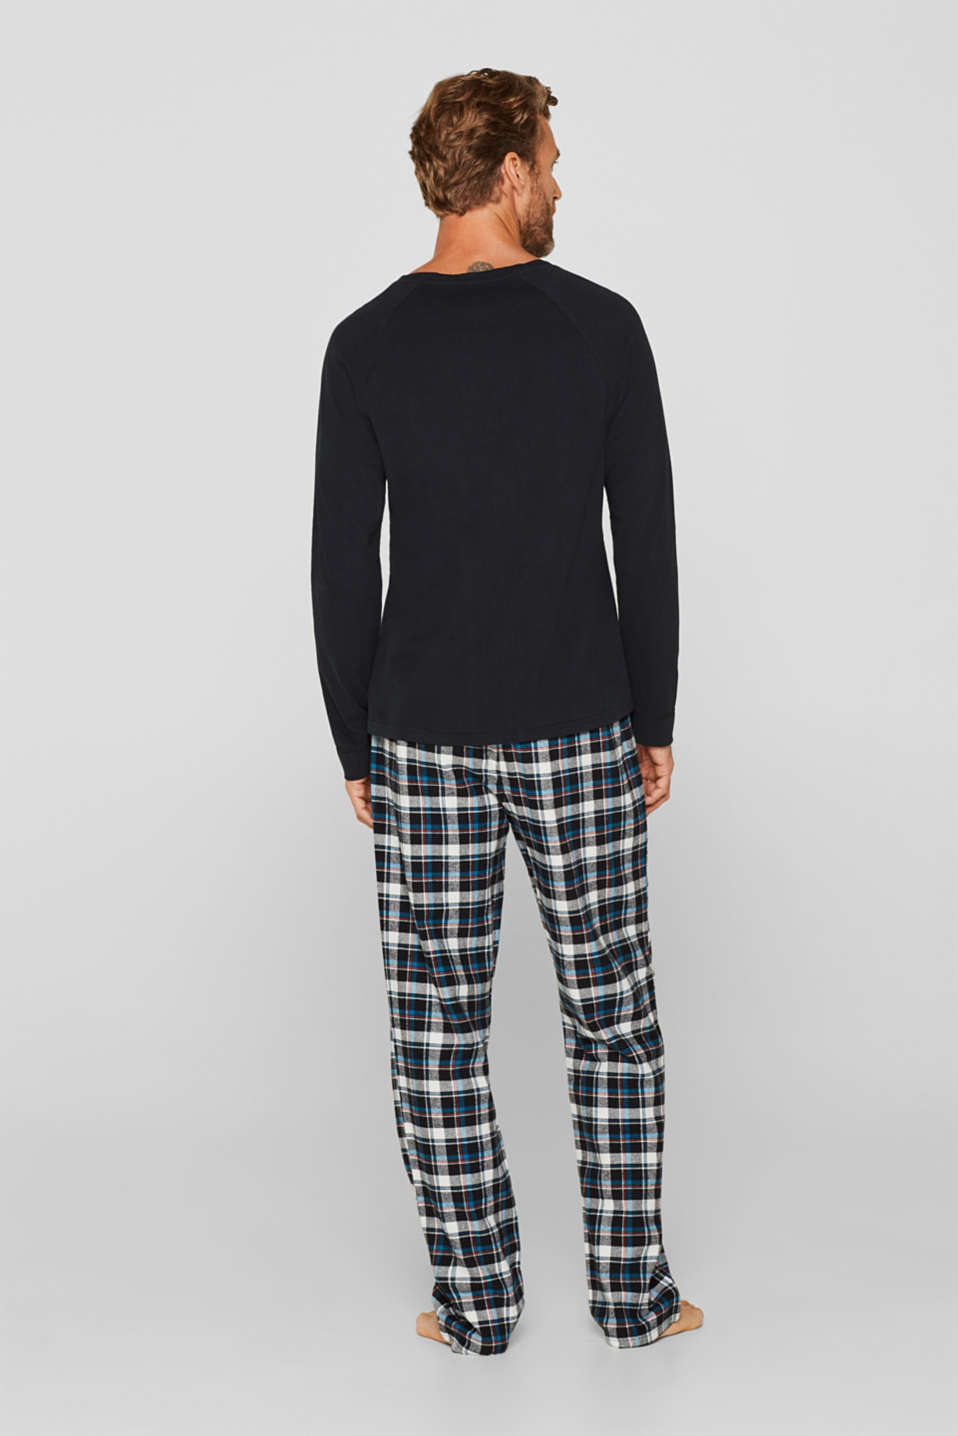 Jersey/flannel pyjamas, 100% cotton, BLACK, detail image number 1